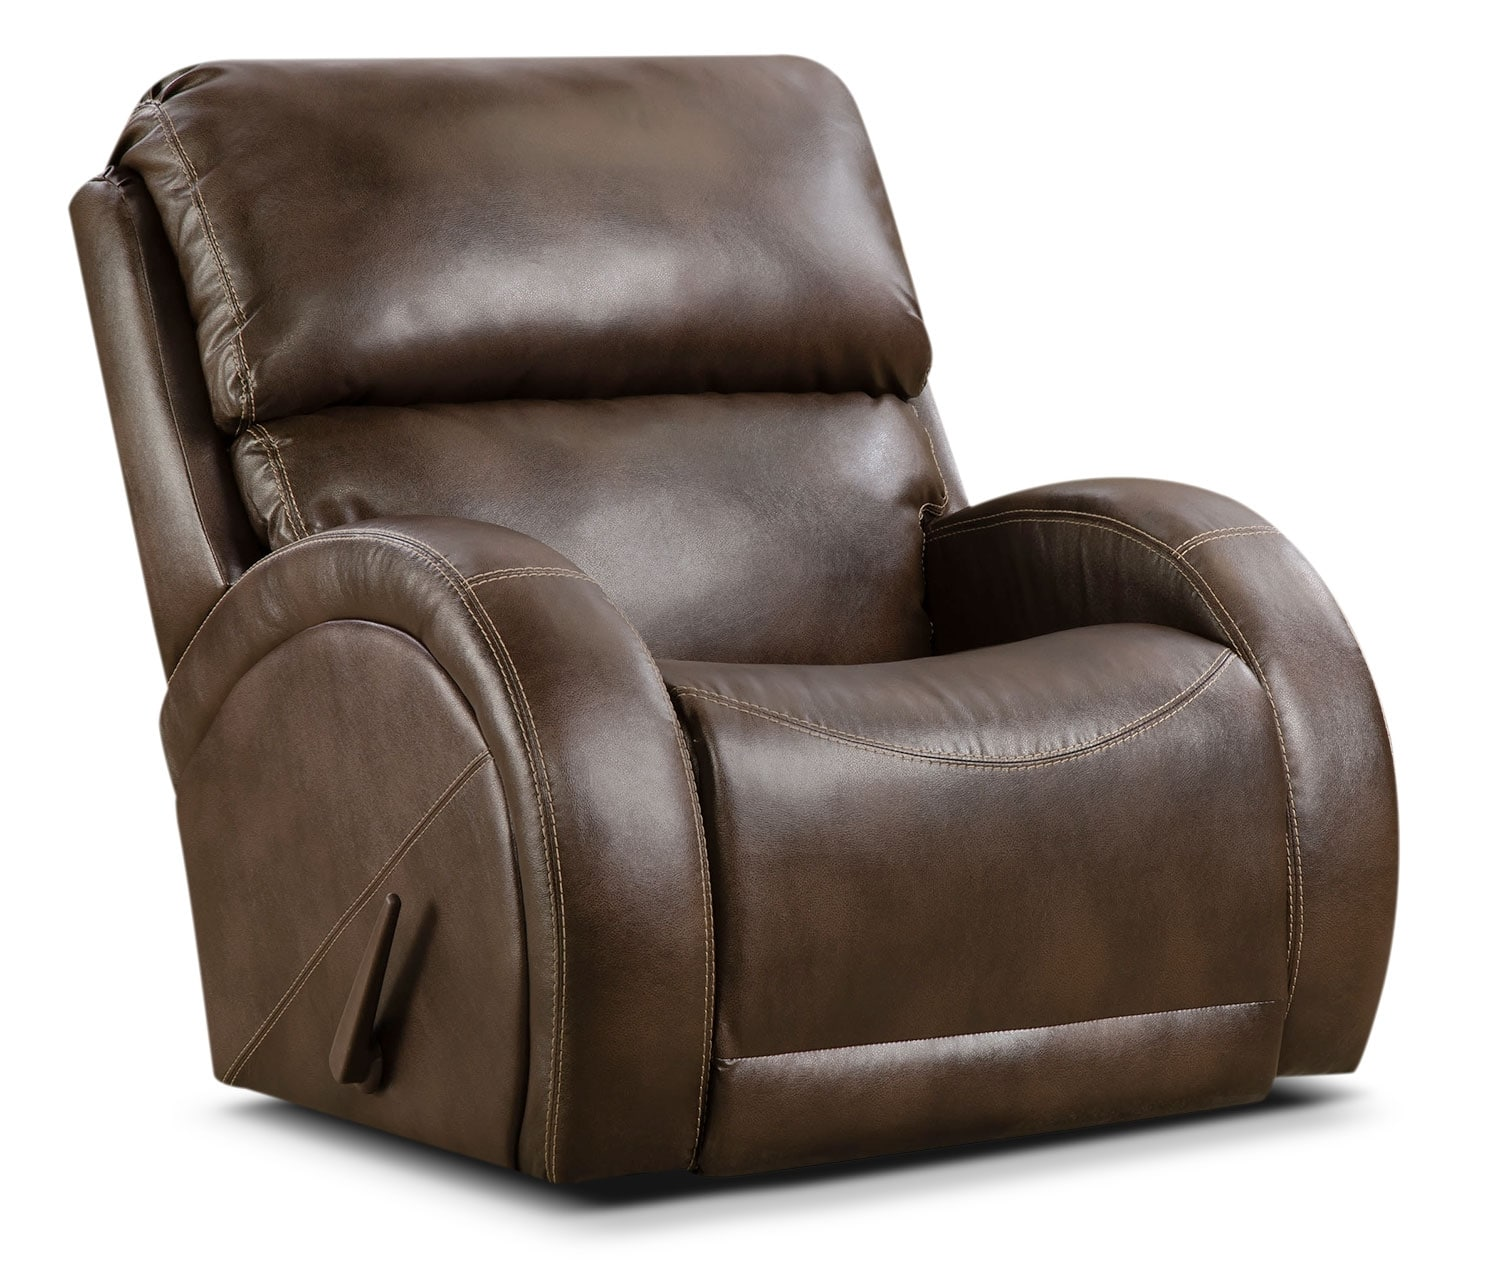 Living Room Furniture - Bentley Recliner